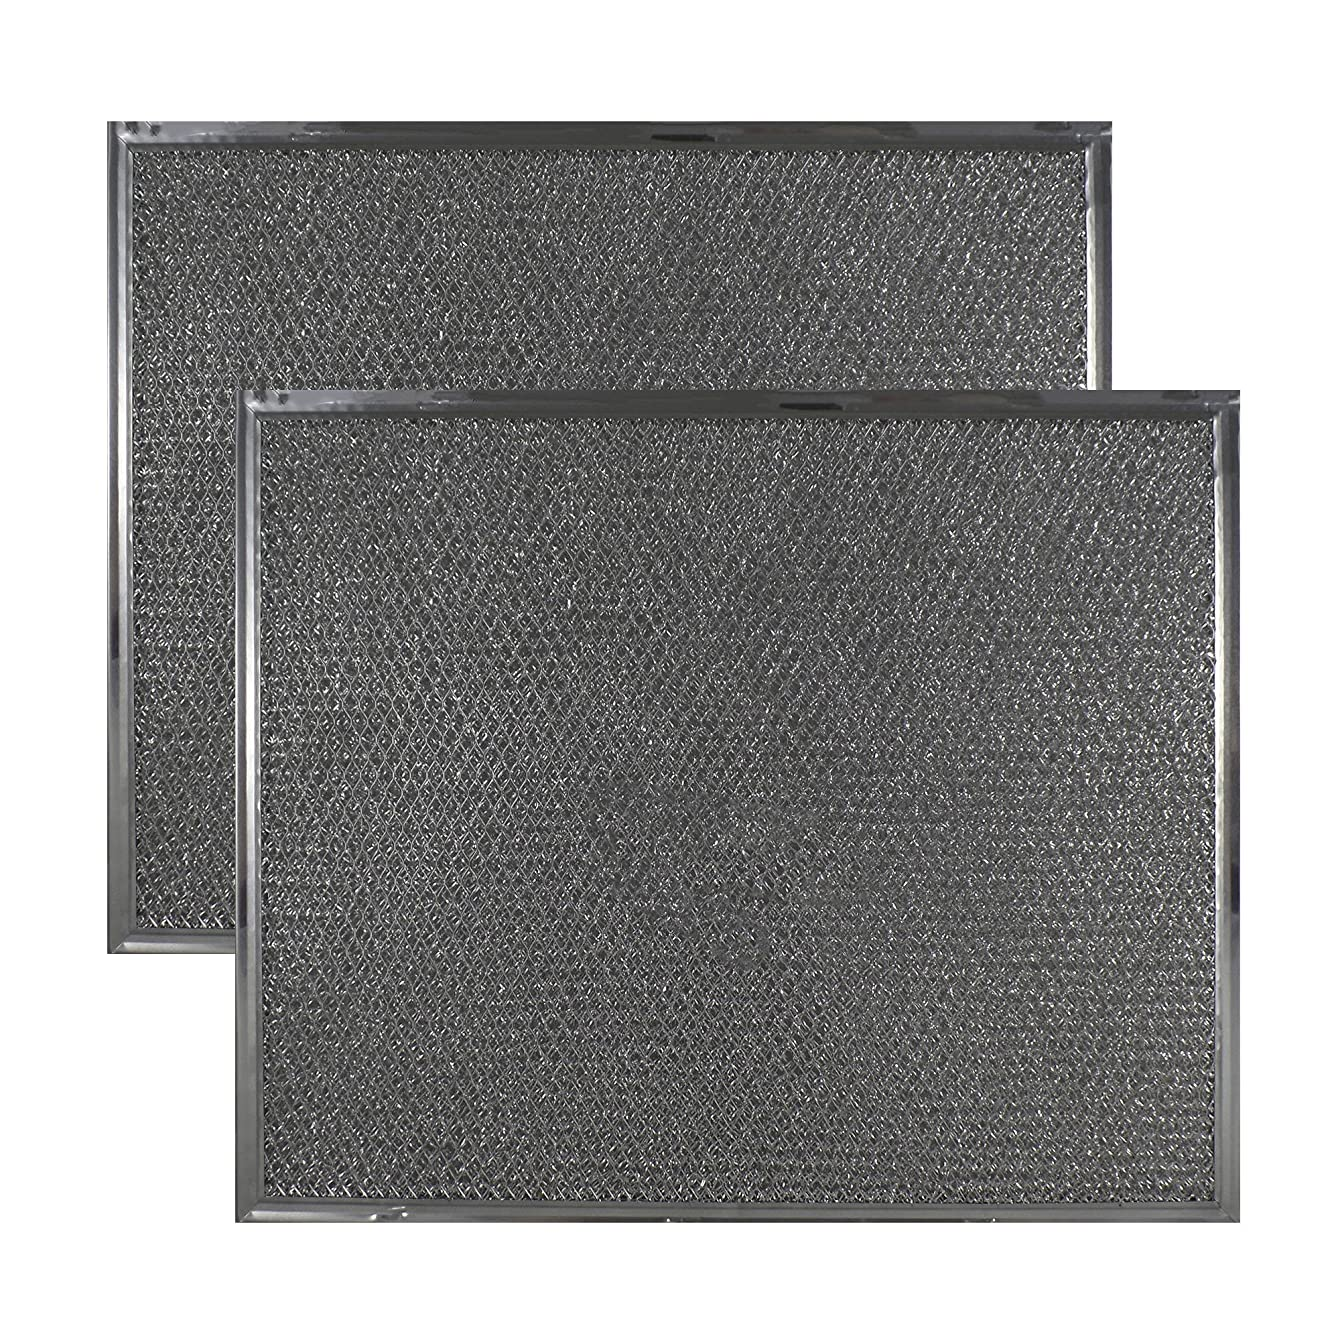 2-PACK Air Filter Factory Compatible Replacement For Maytag & Jenn Air PS2076846 AP4089729 Range Hood Downdraft Aluminum Grease Filter ivjqazzjhbqle49